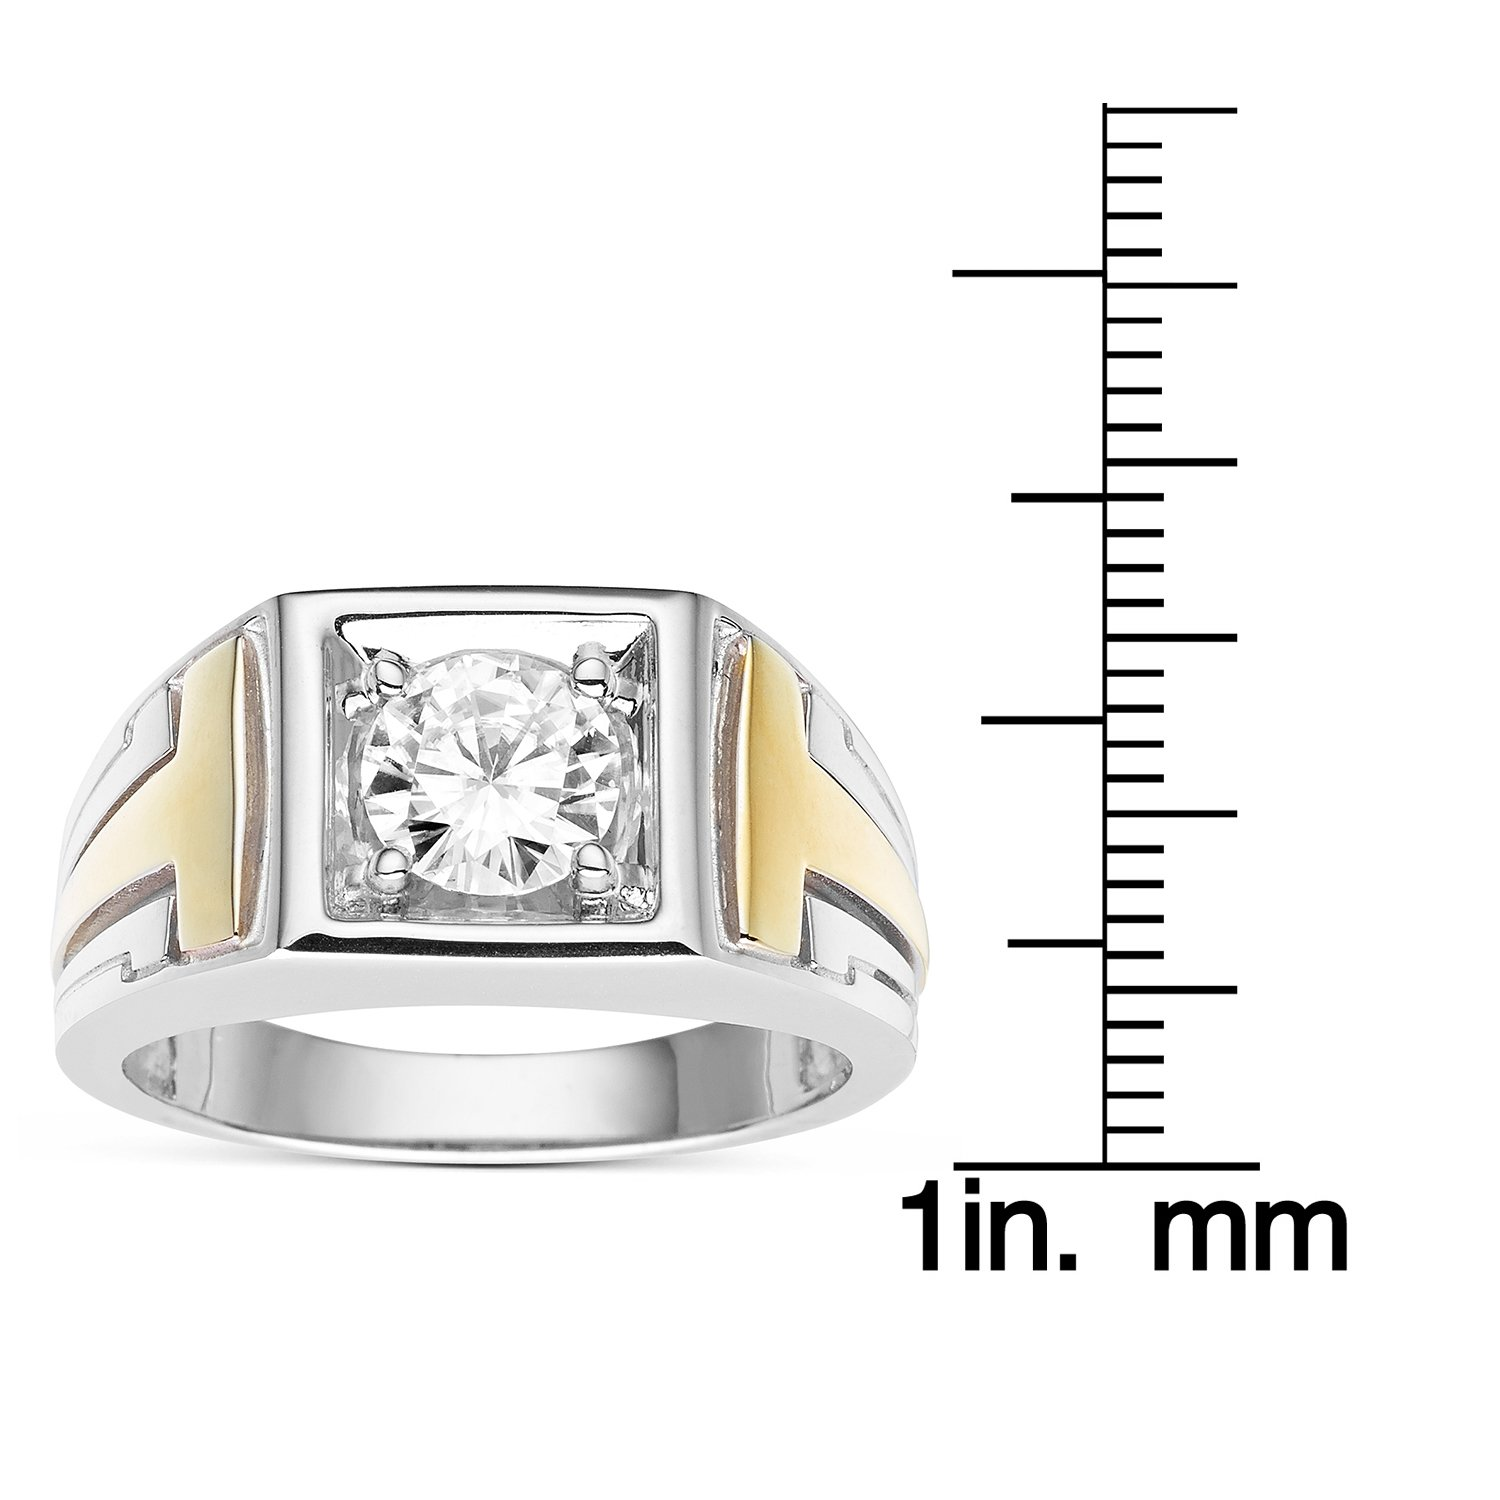 Forever Classic Men�s Round 7.0mm Moissanite Wedding Band-size 11, 1.20ct DEW By Charles & Colvard by Charles & Colvard (Image #4)